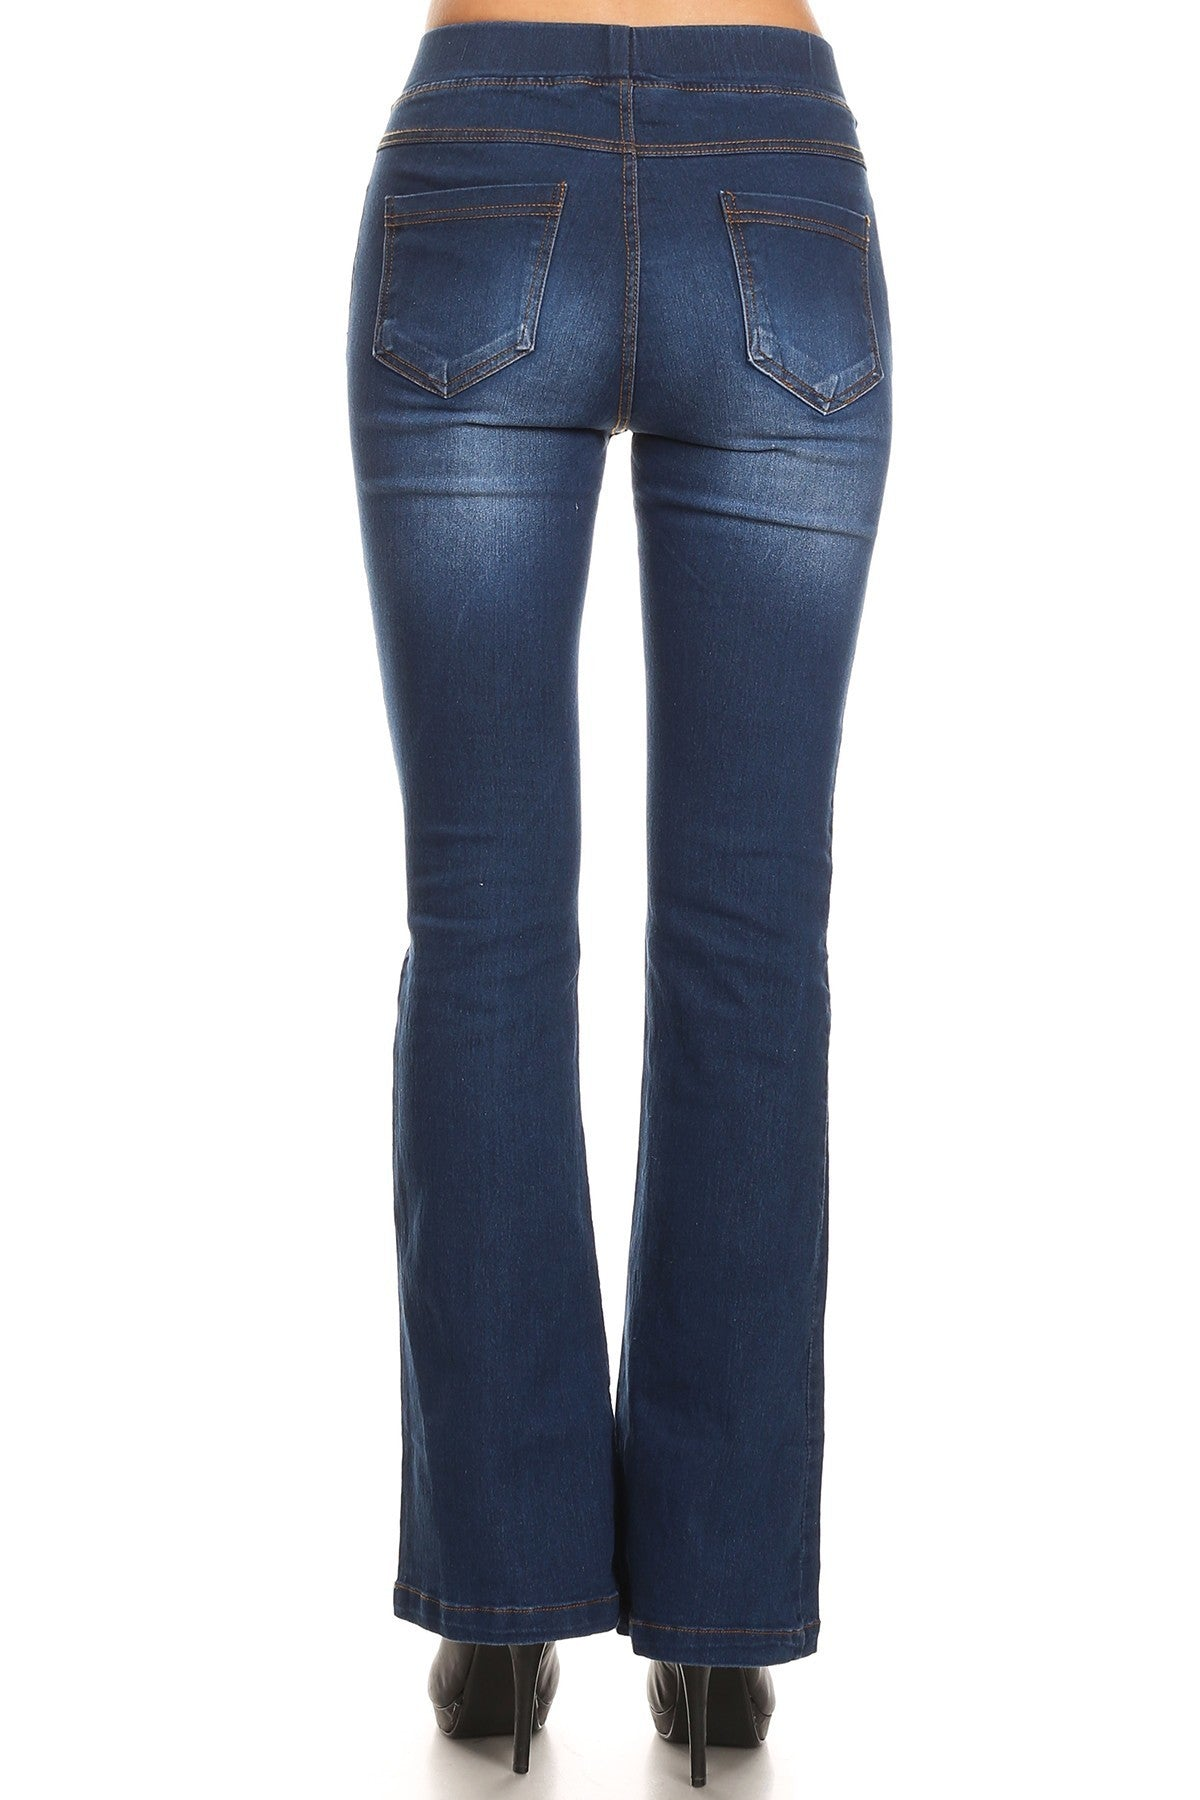 Pull On Flare Jeans - winsome-boutique